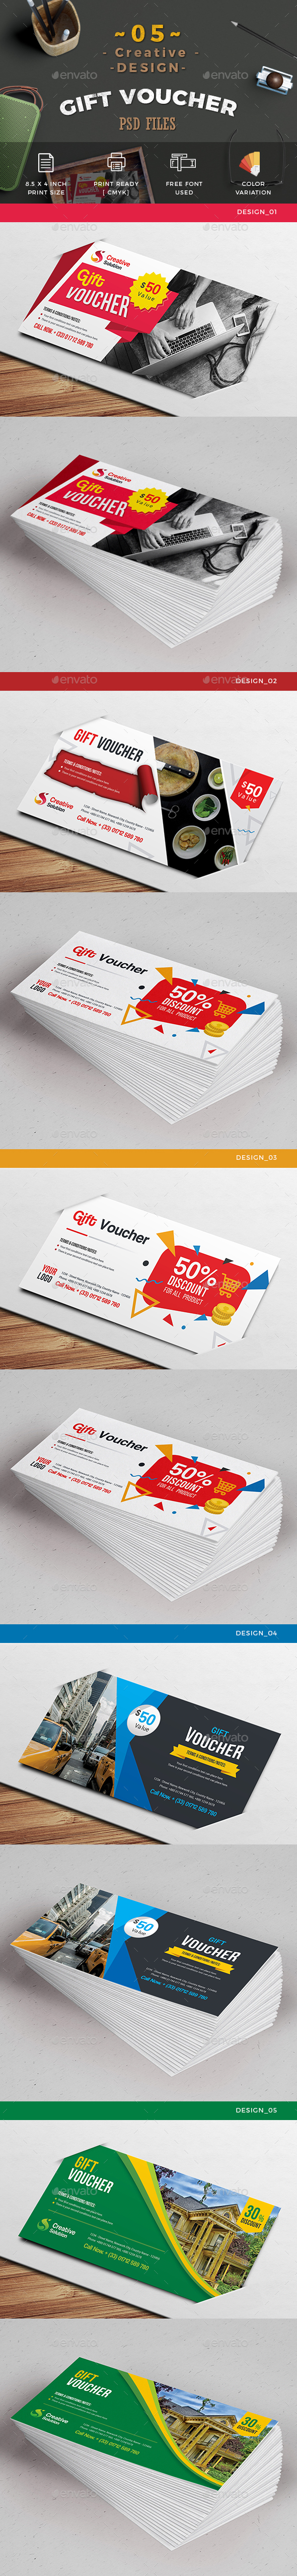 5_Design Gift Voucher - Cards & Invites Print Templates